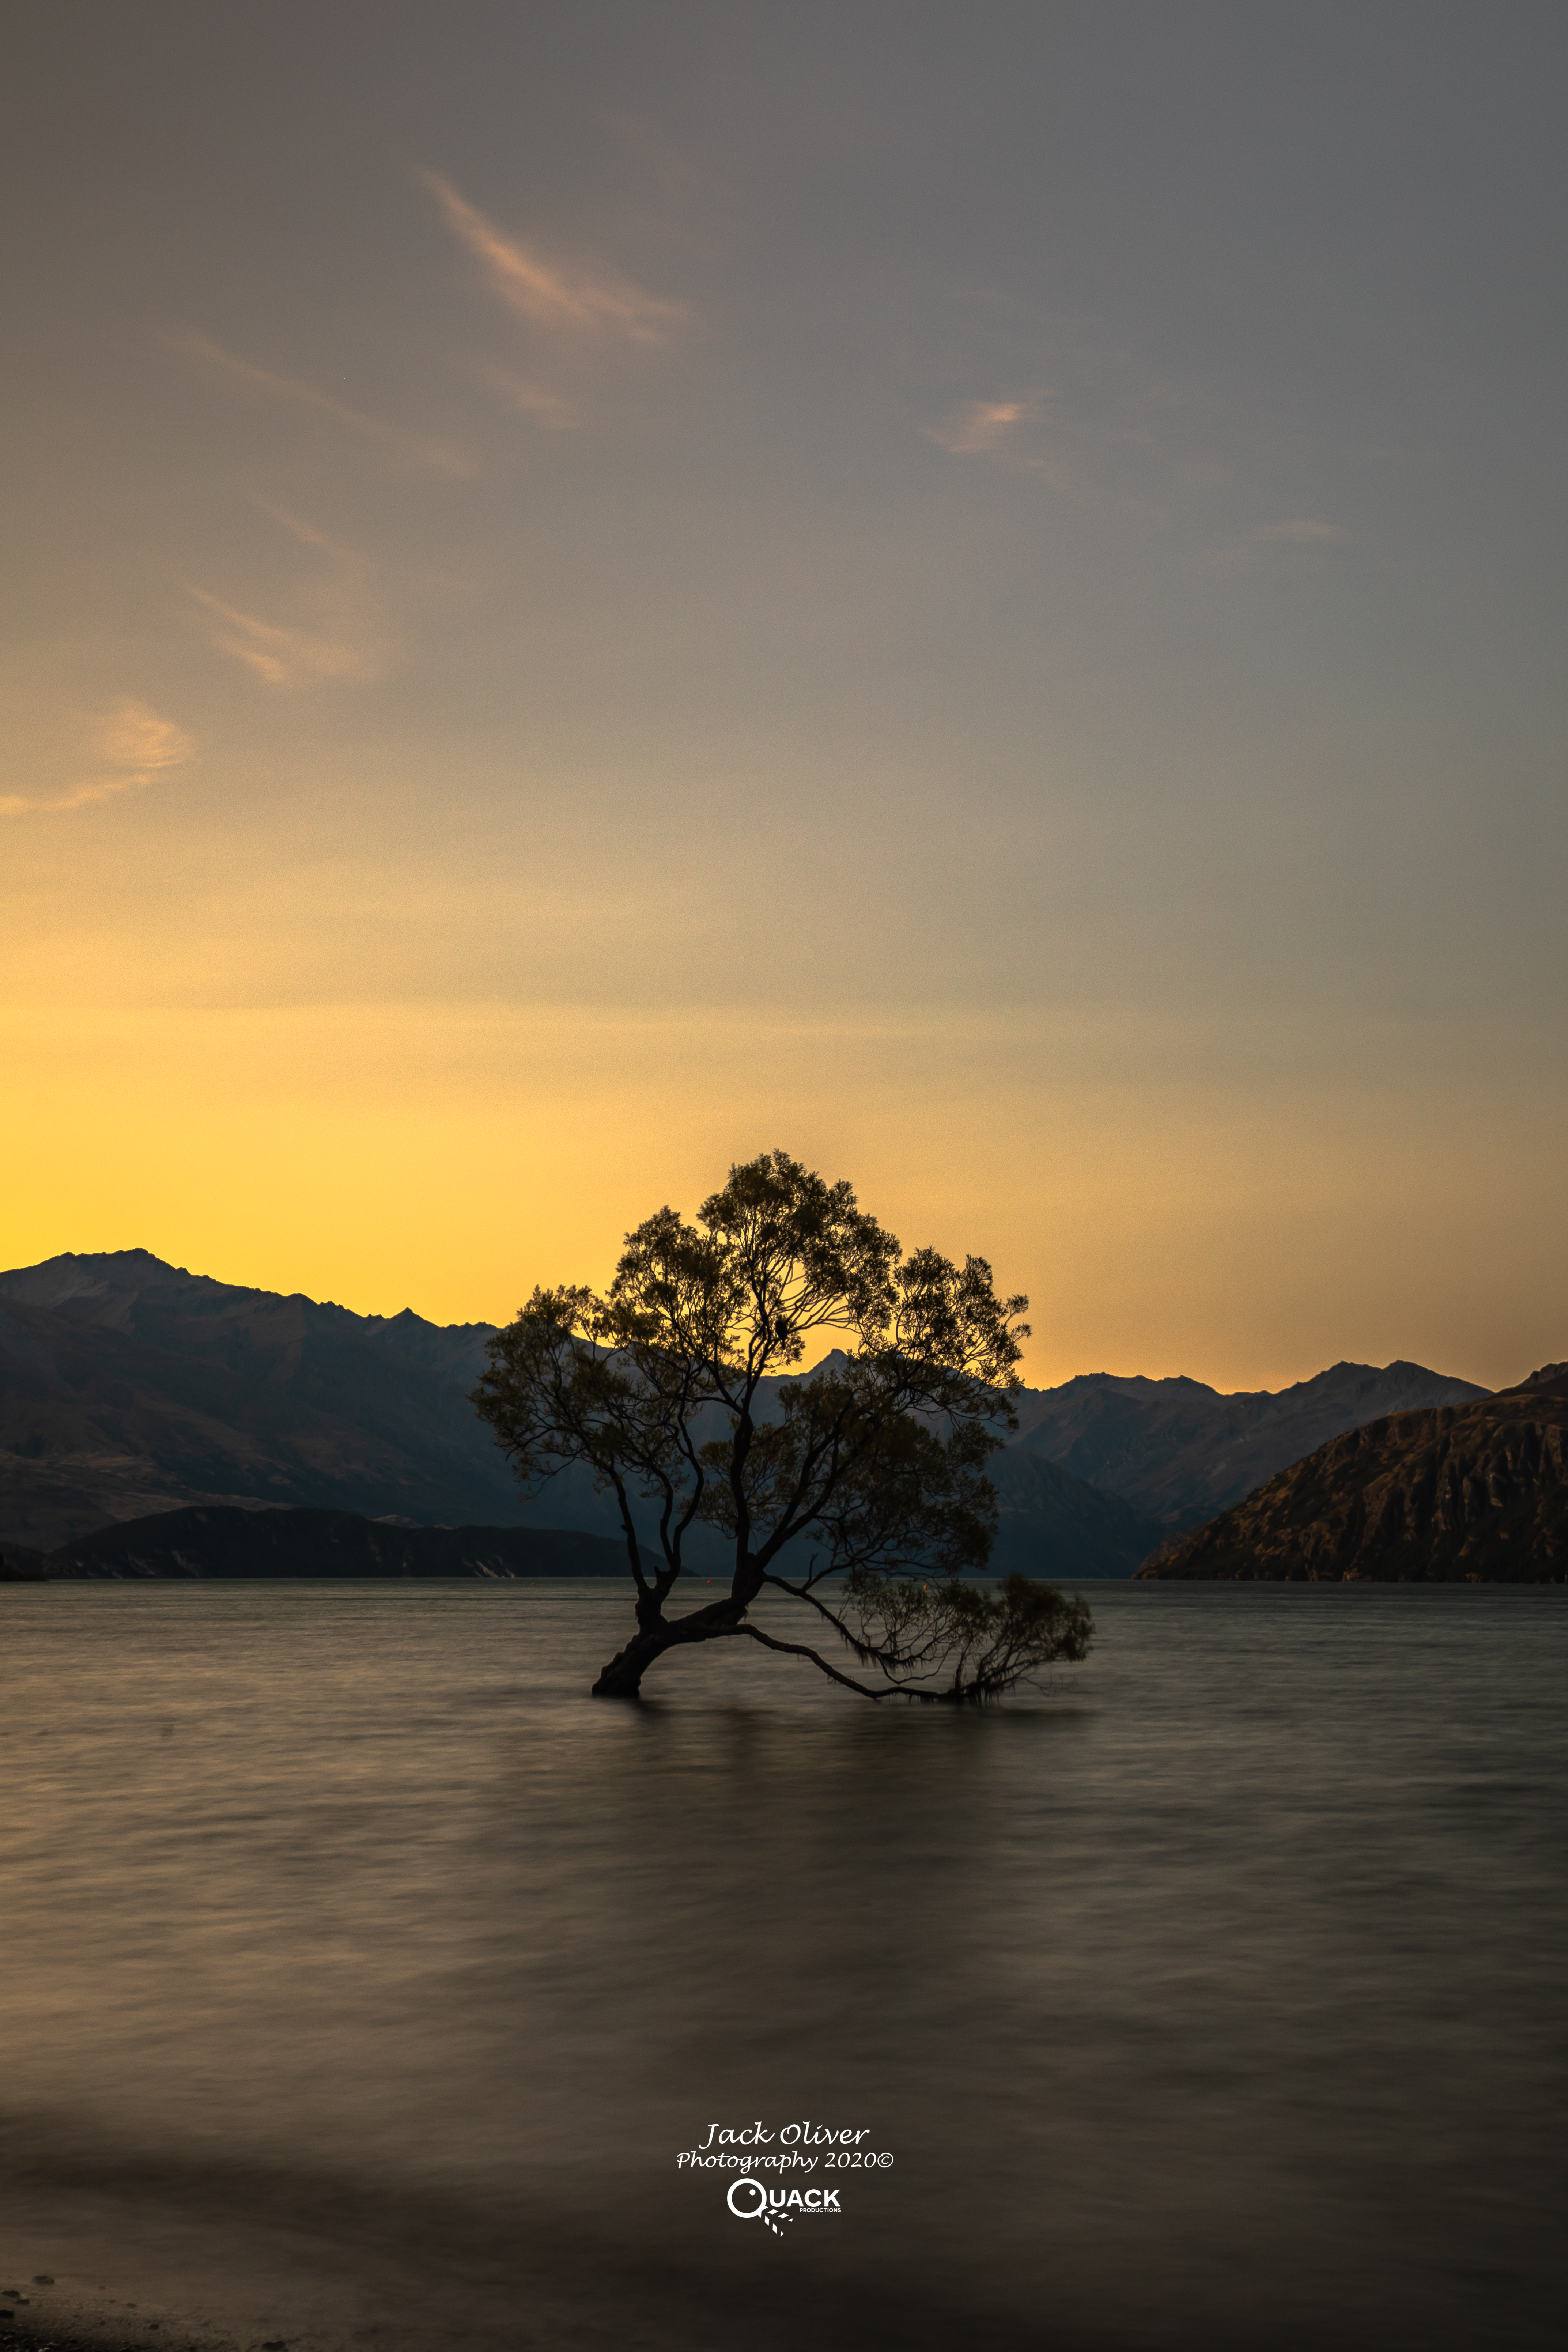 THE WANAKA TREE AND THE GOLDEN SUNSET